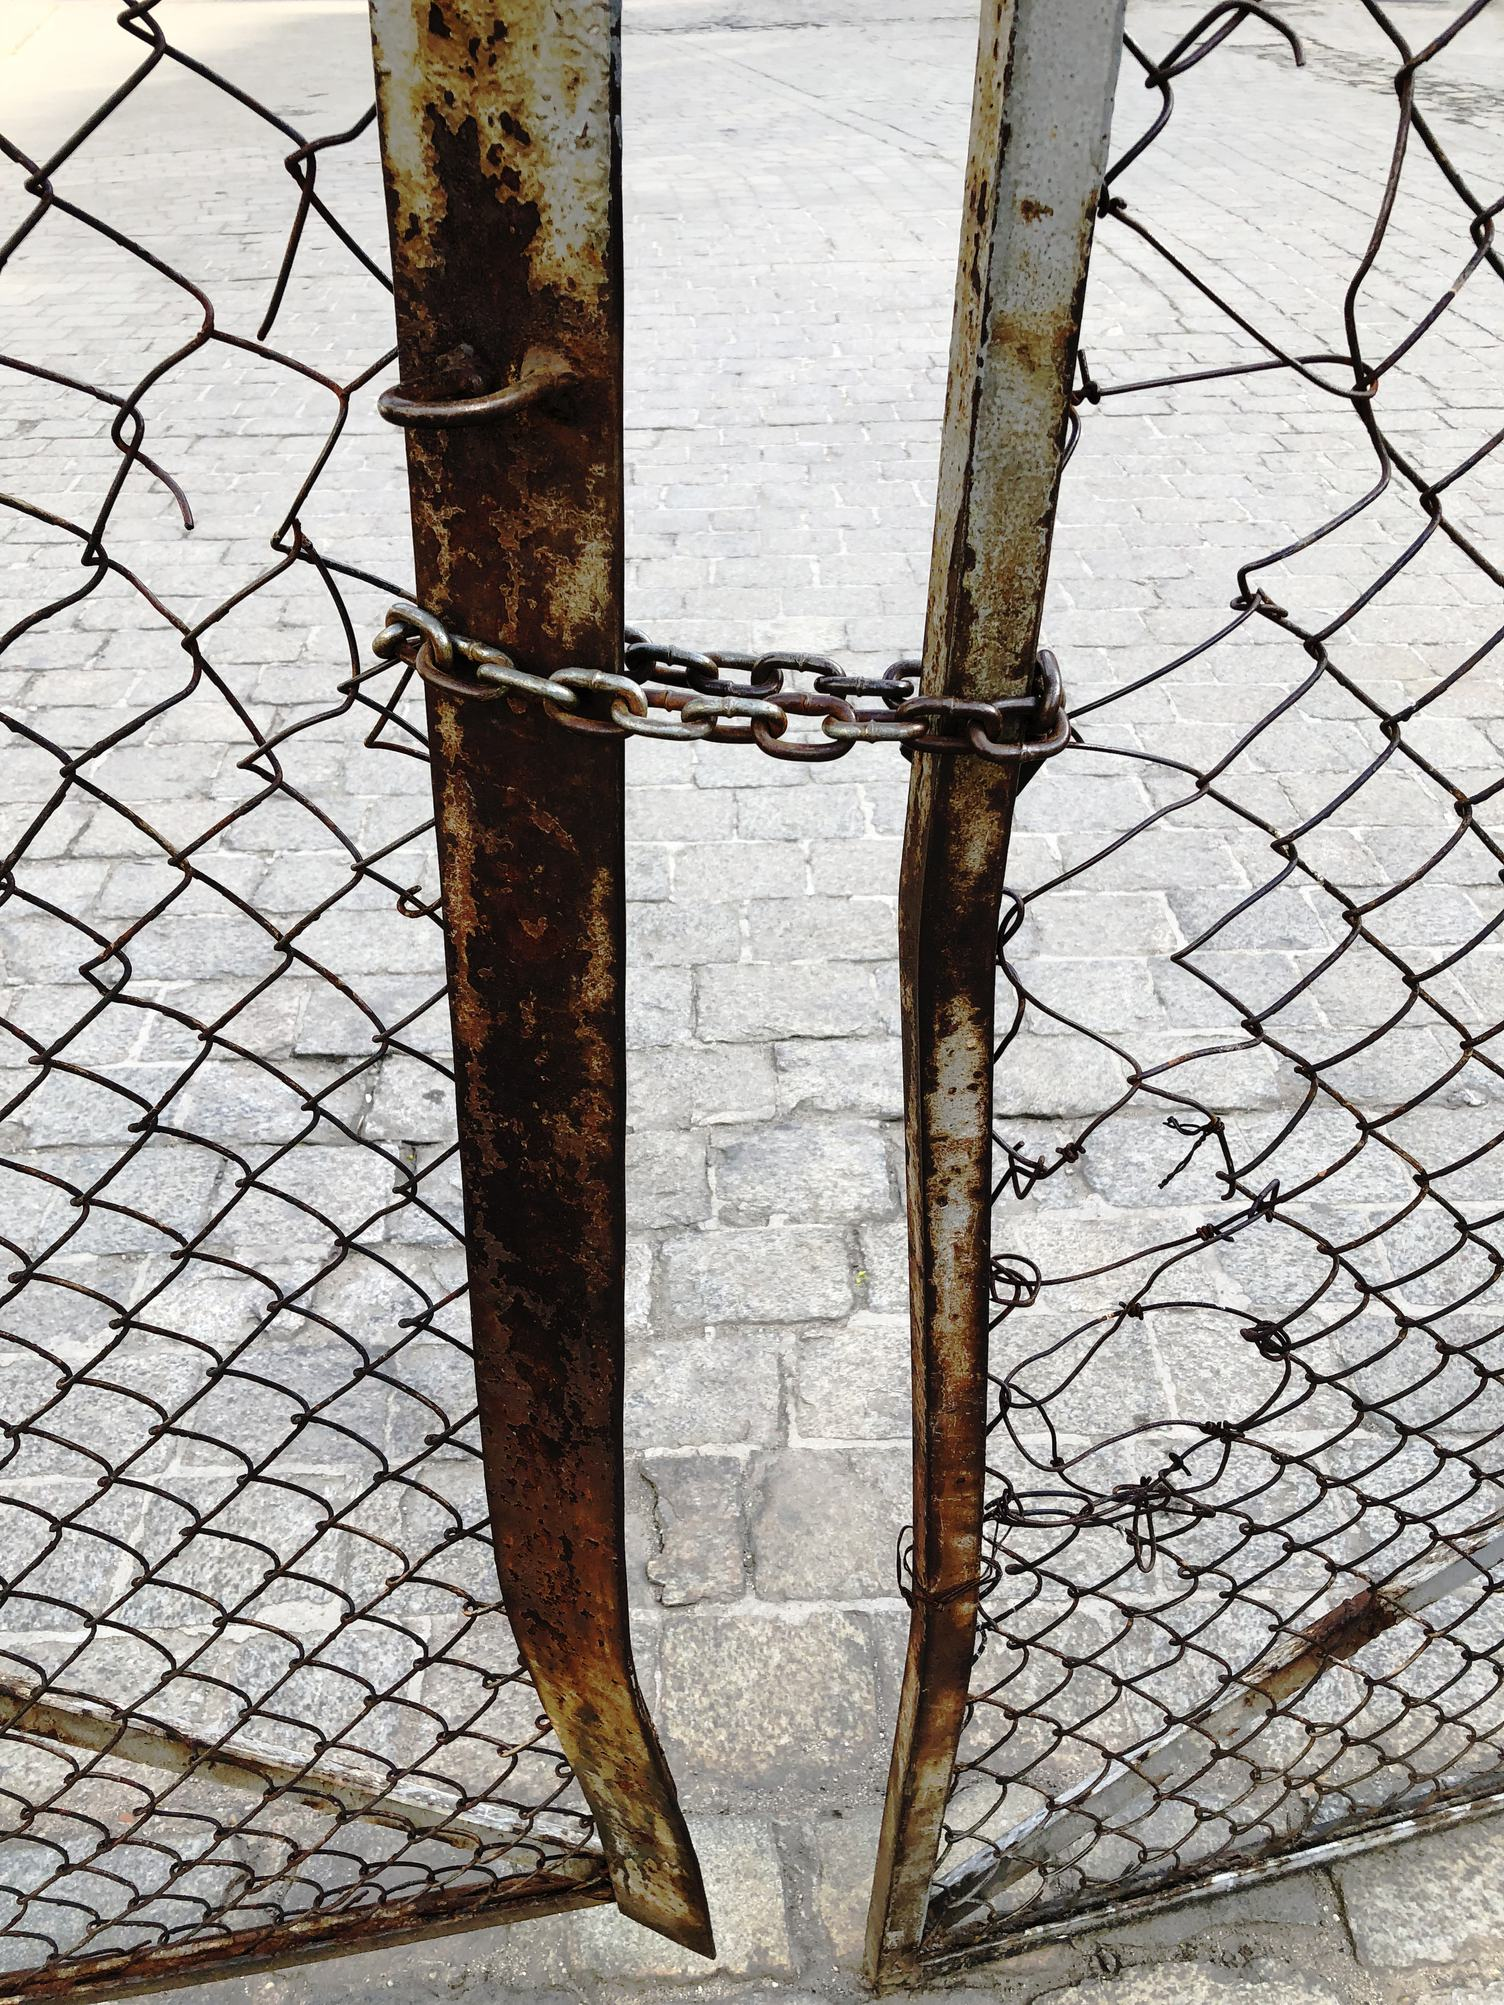 Closed Old Rusty Gate